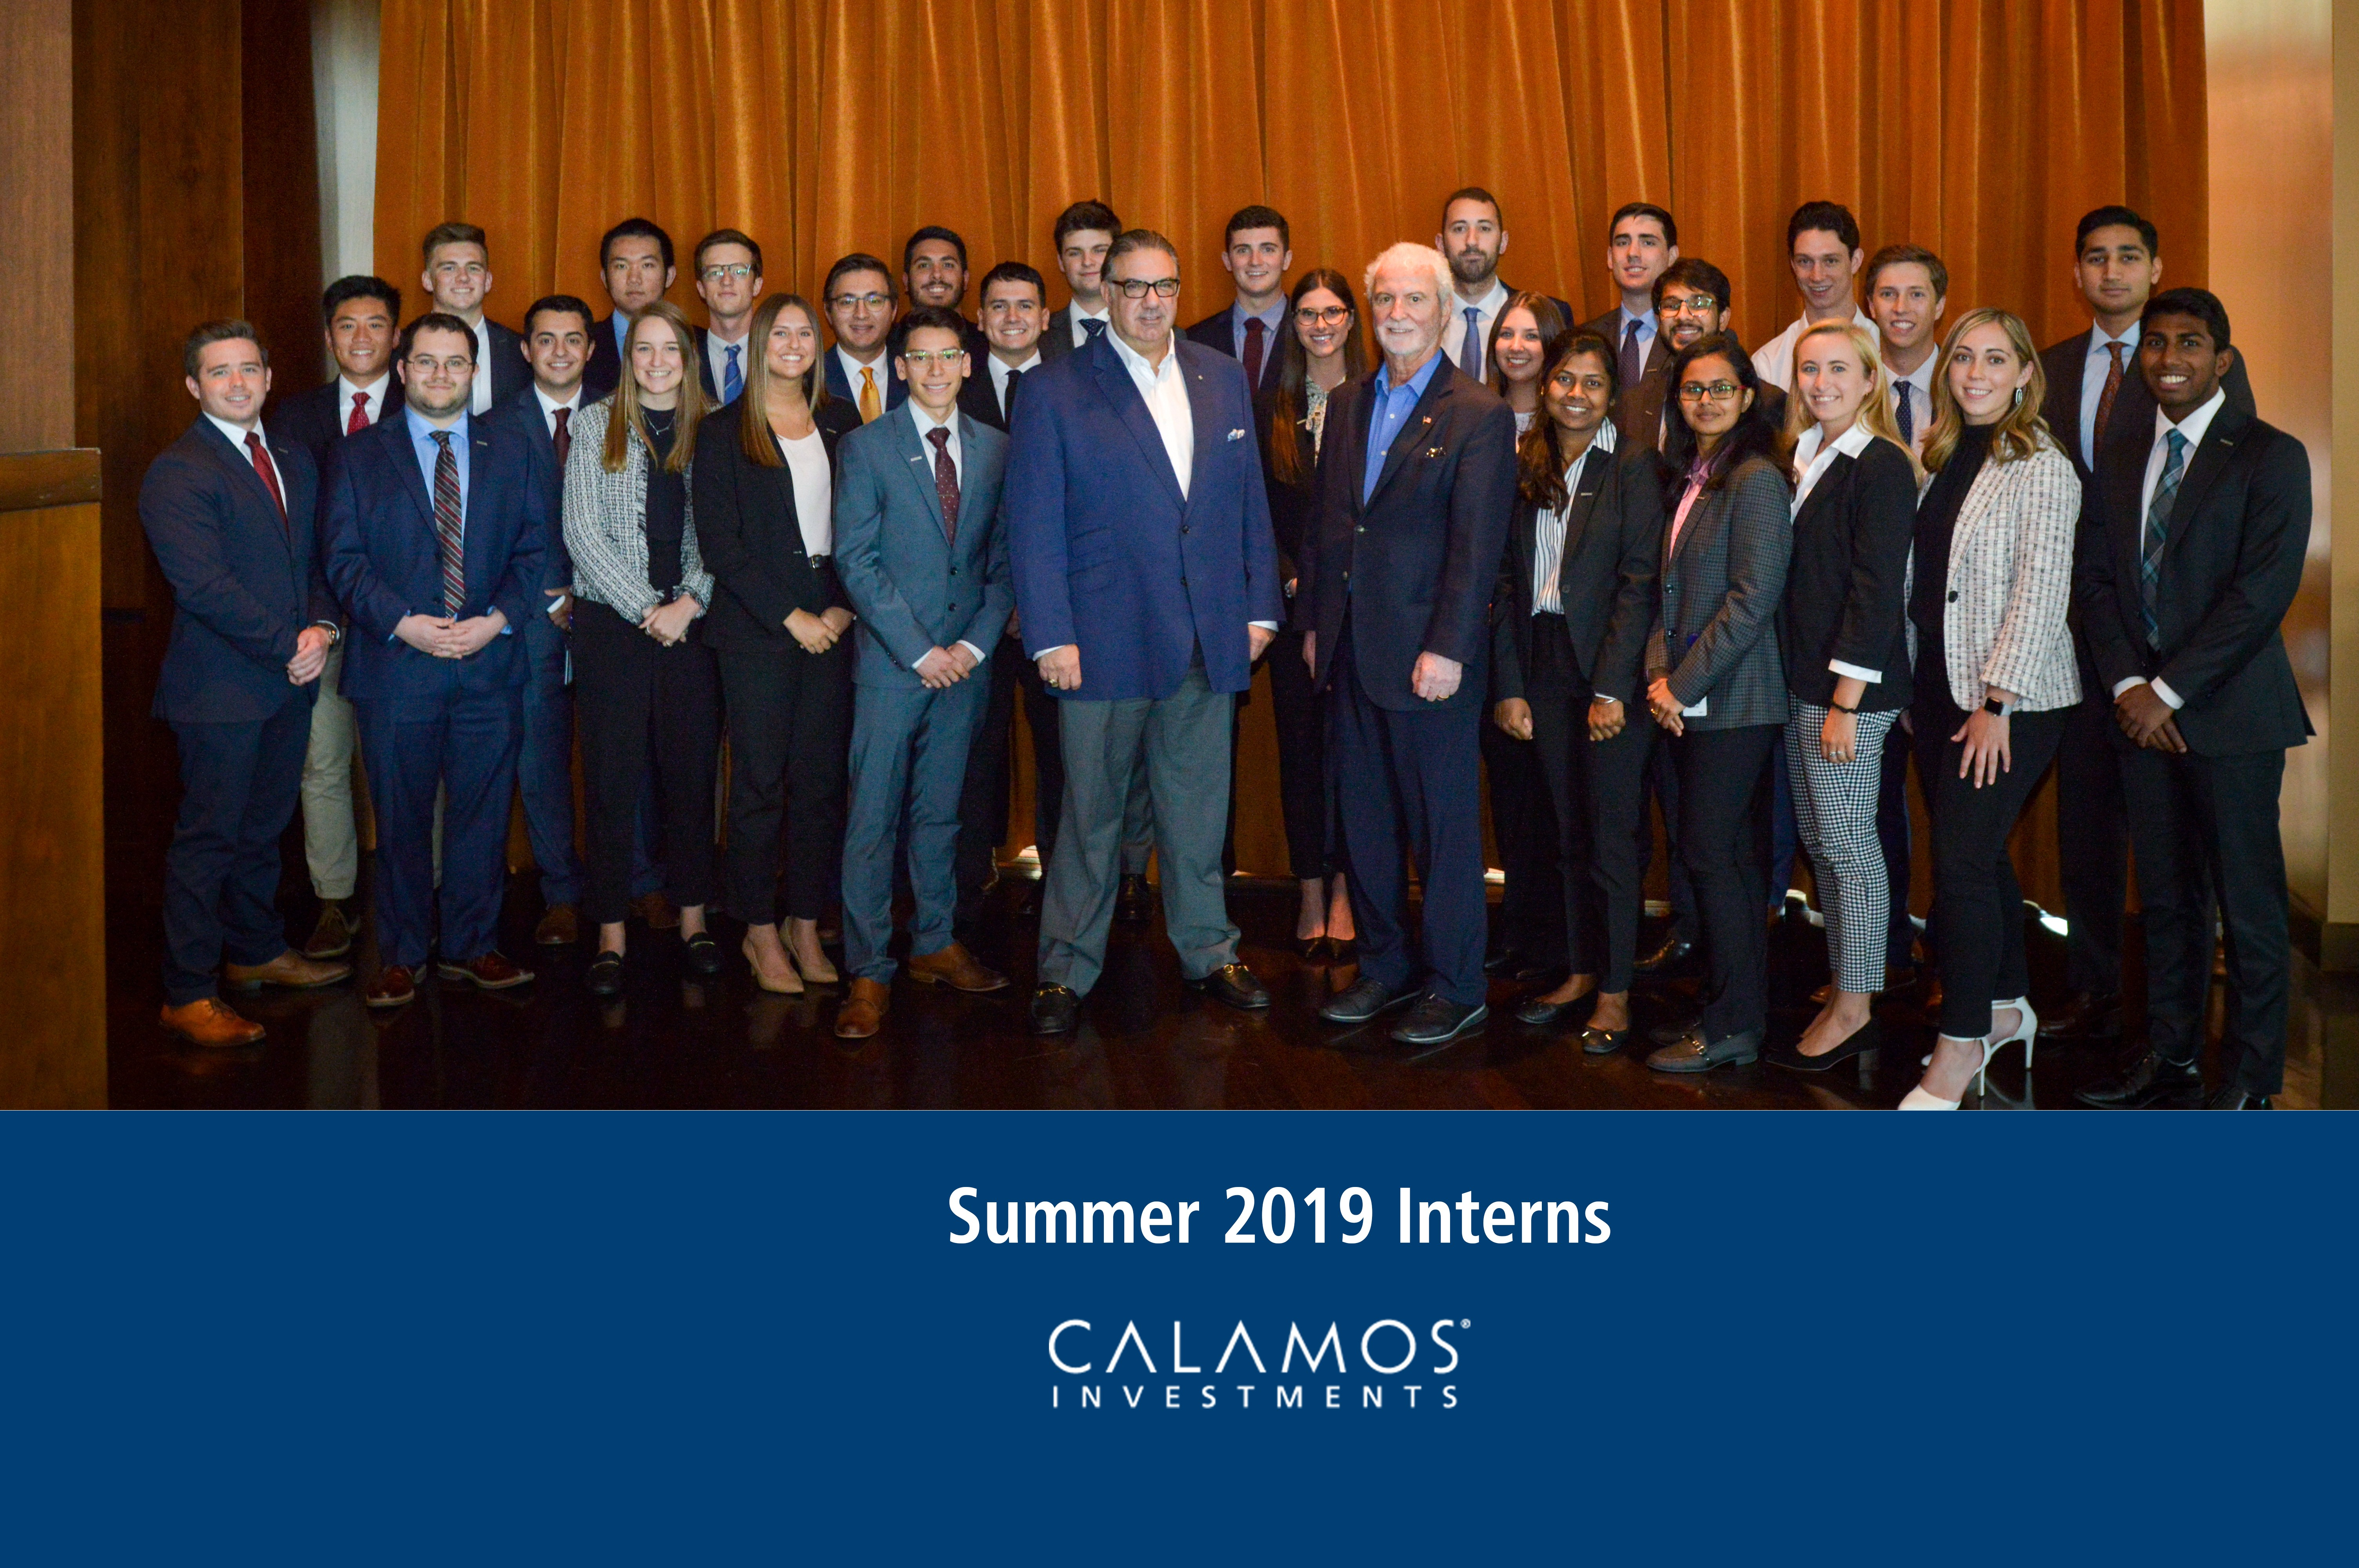 Calamos investments internships balfour beatty infrastructure investments limited james